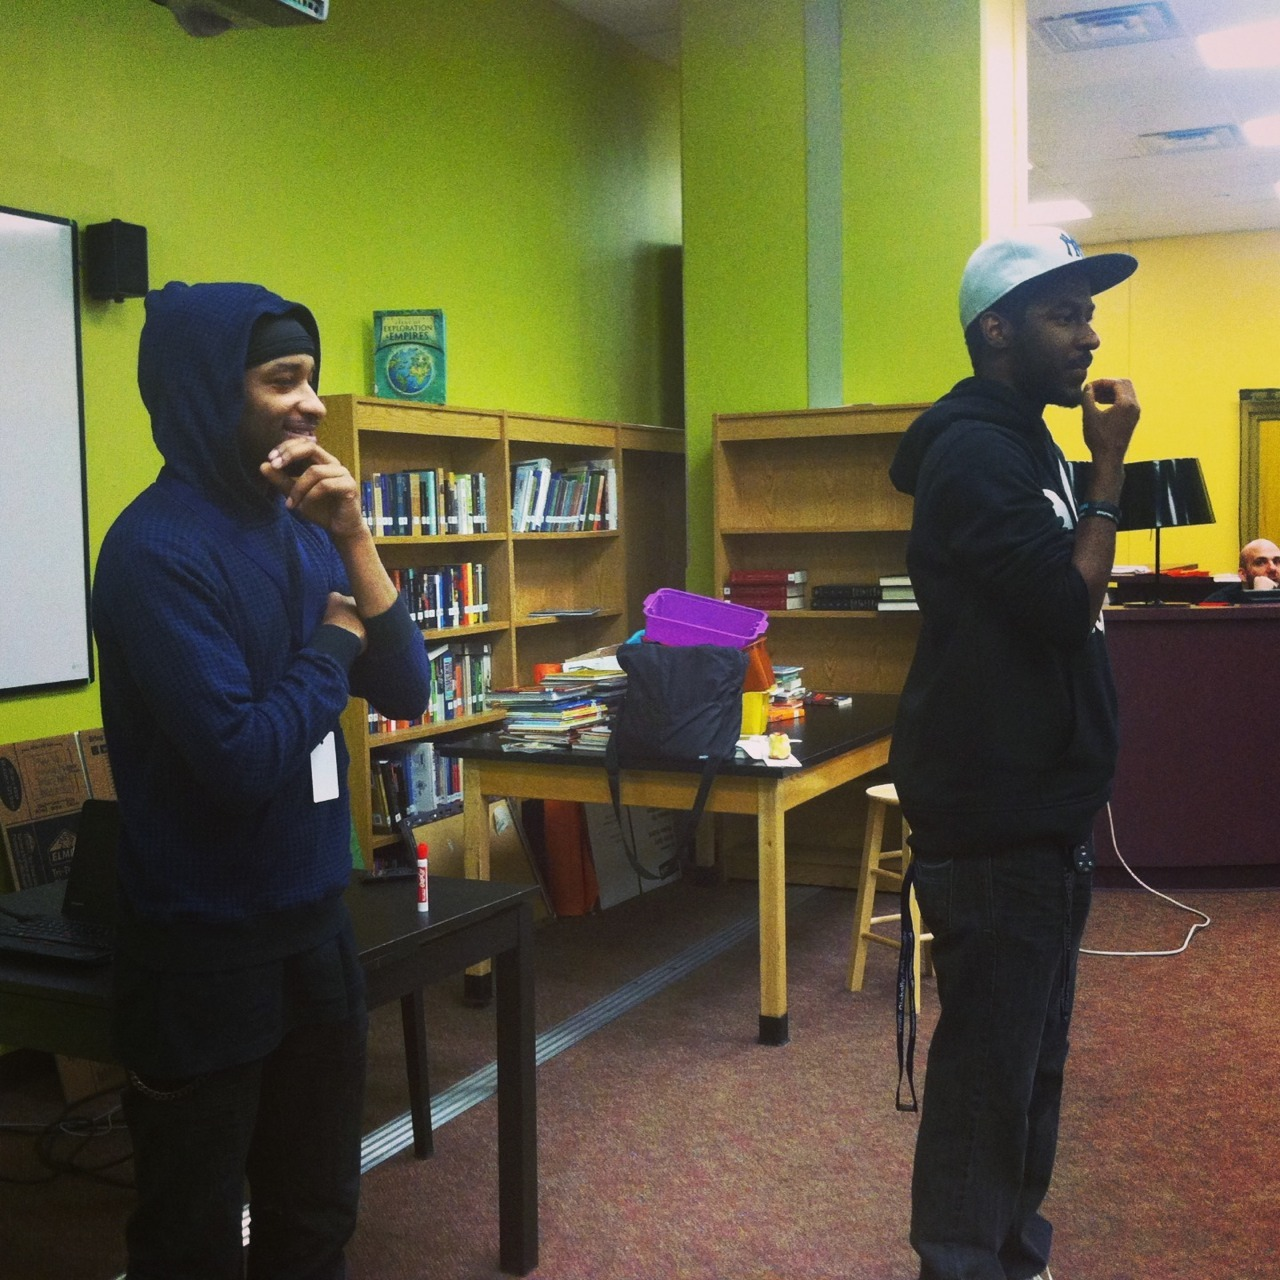 Today with the youth at RAPCS #lindoyes and #marquistst perform and inspire!